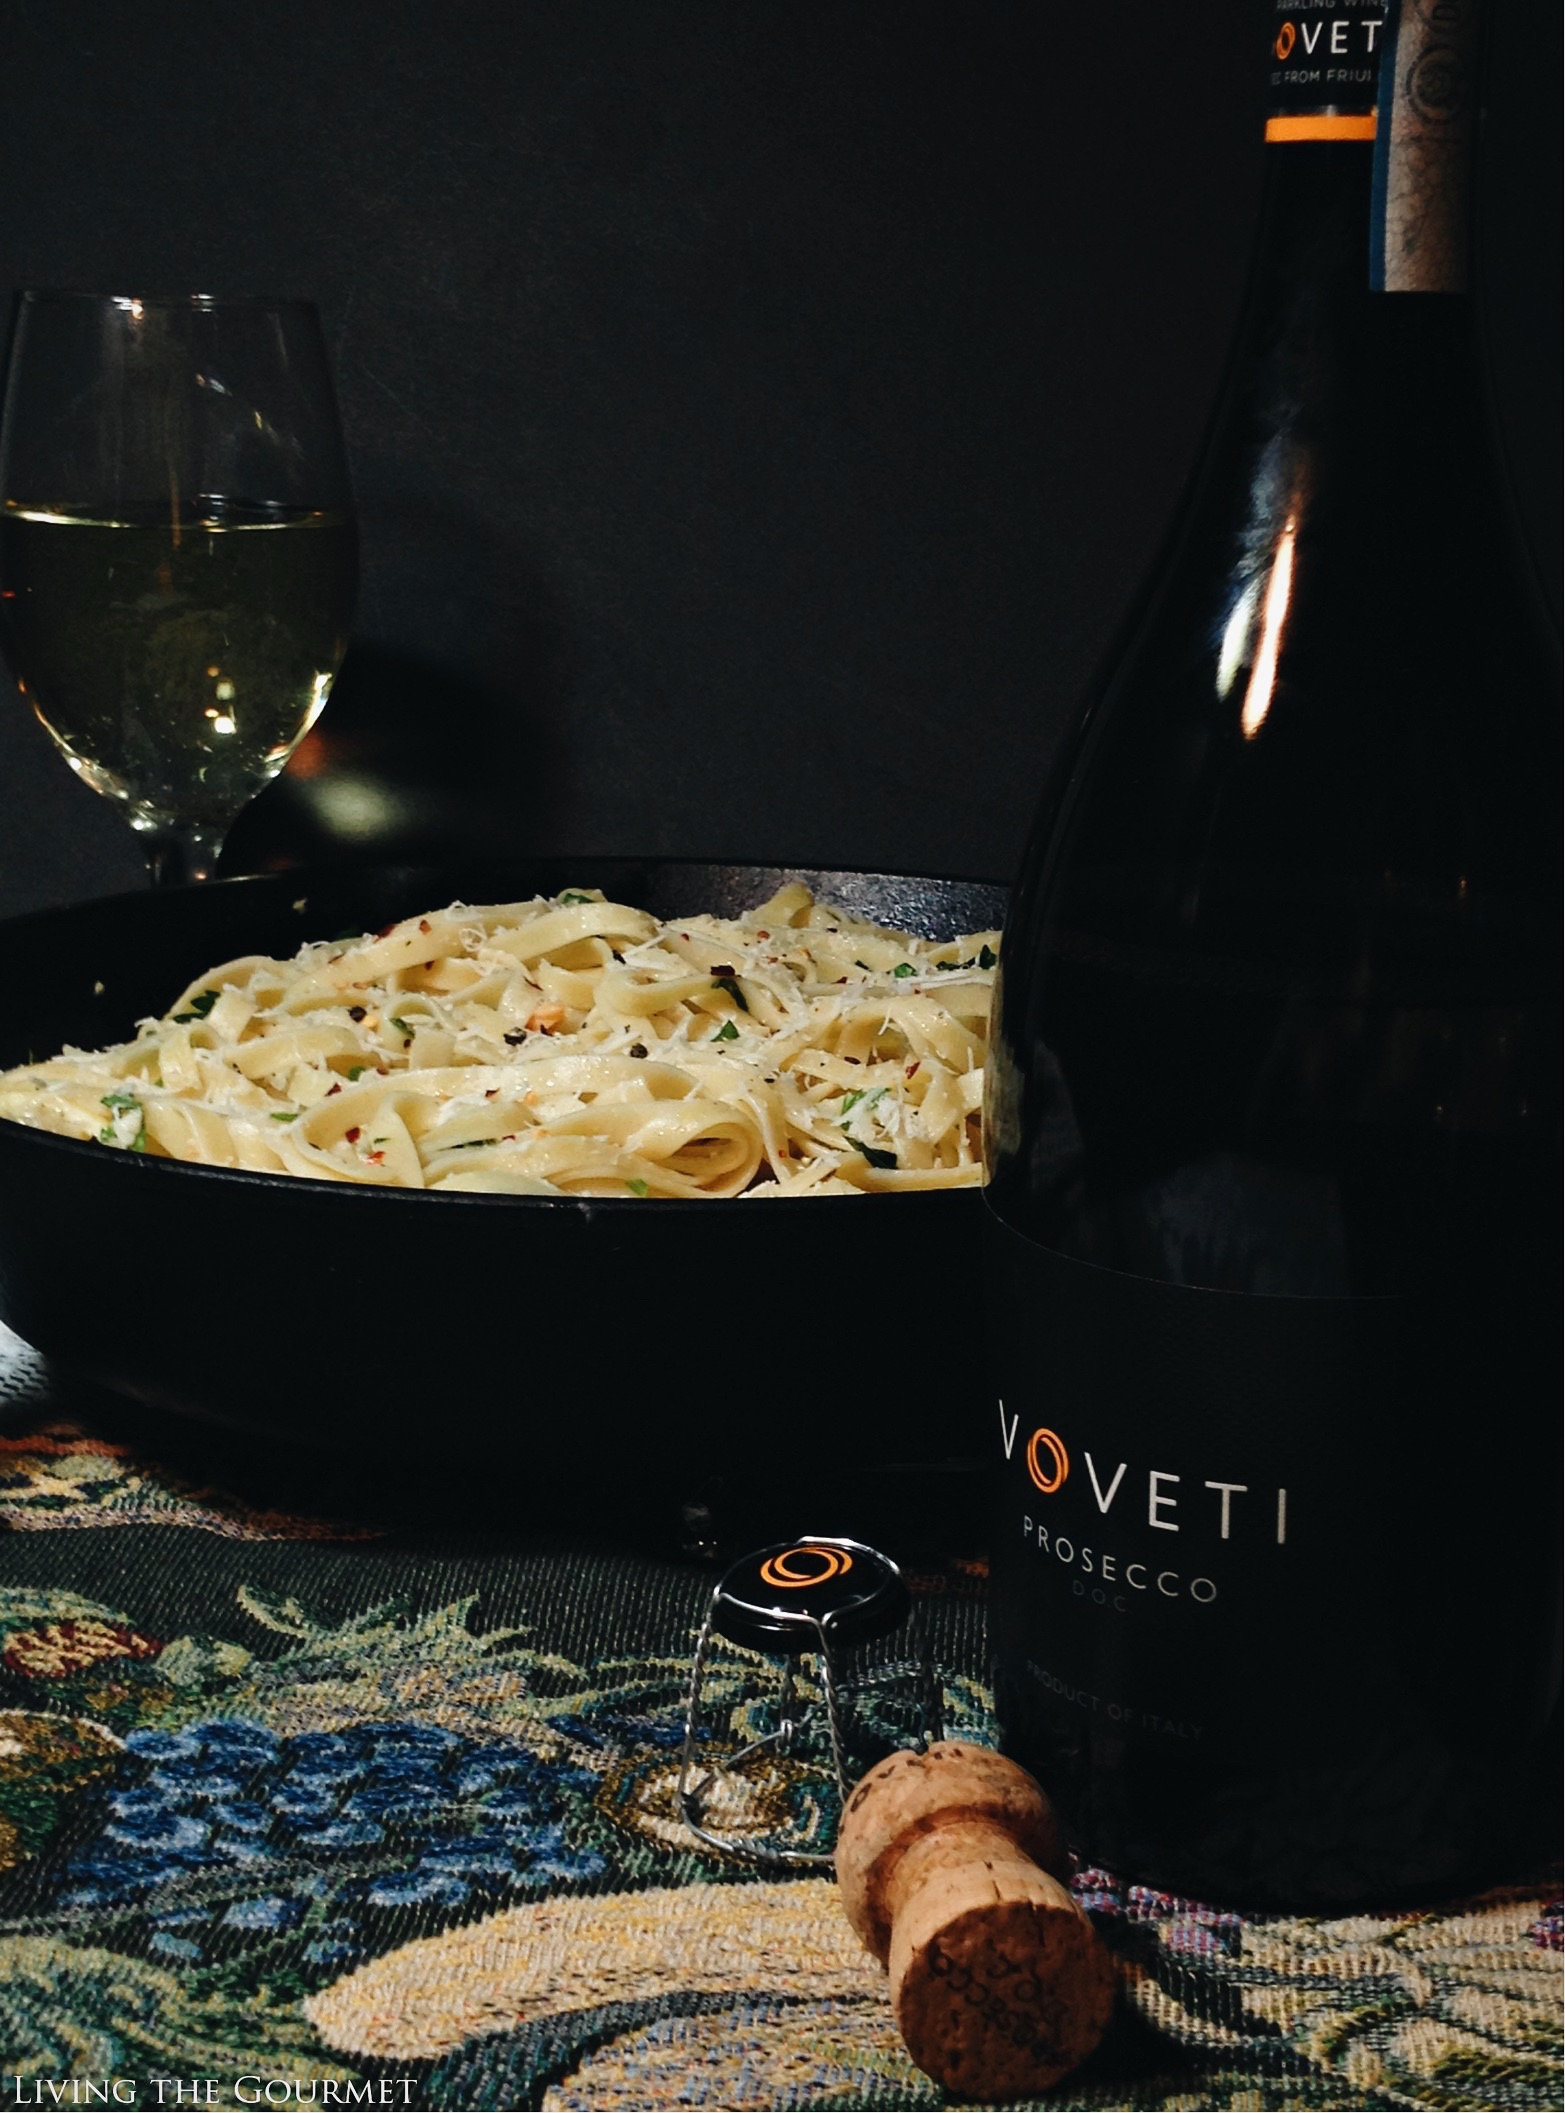 Living the Gourmet: Fettuccini with White Clam Sauce and VOVETI Prosecco | #VOVETI #CG